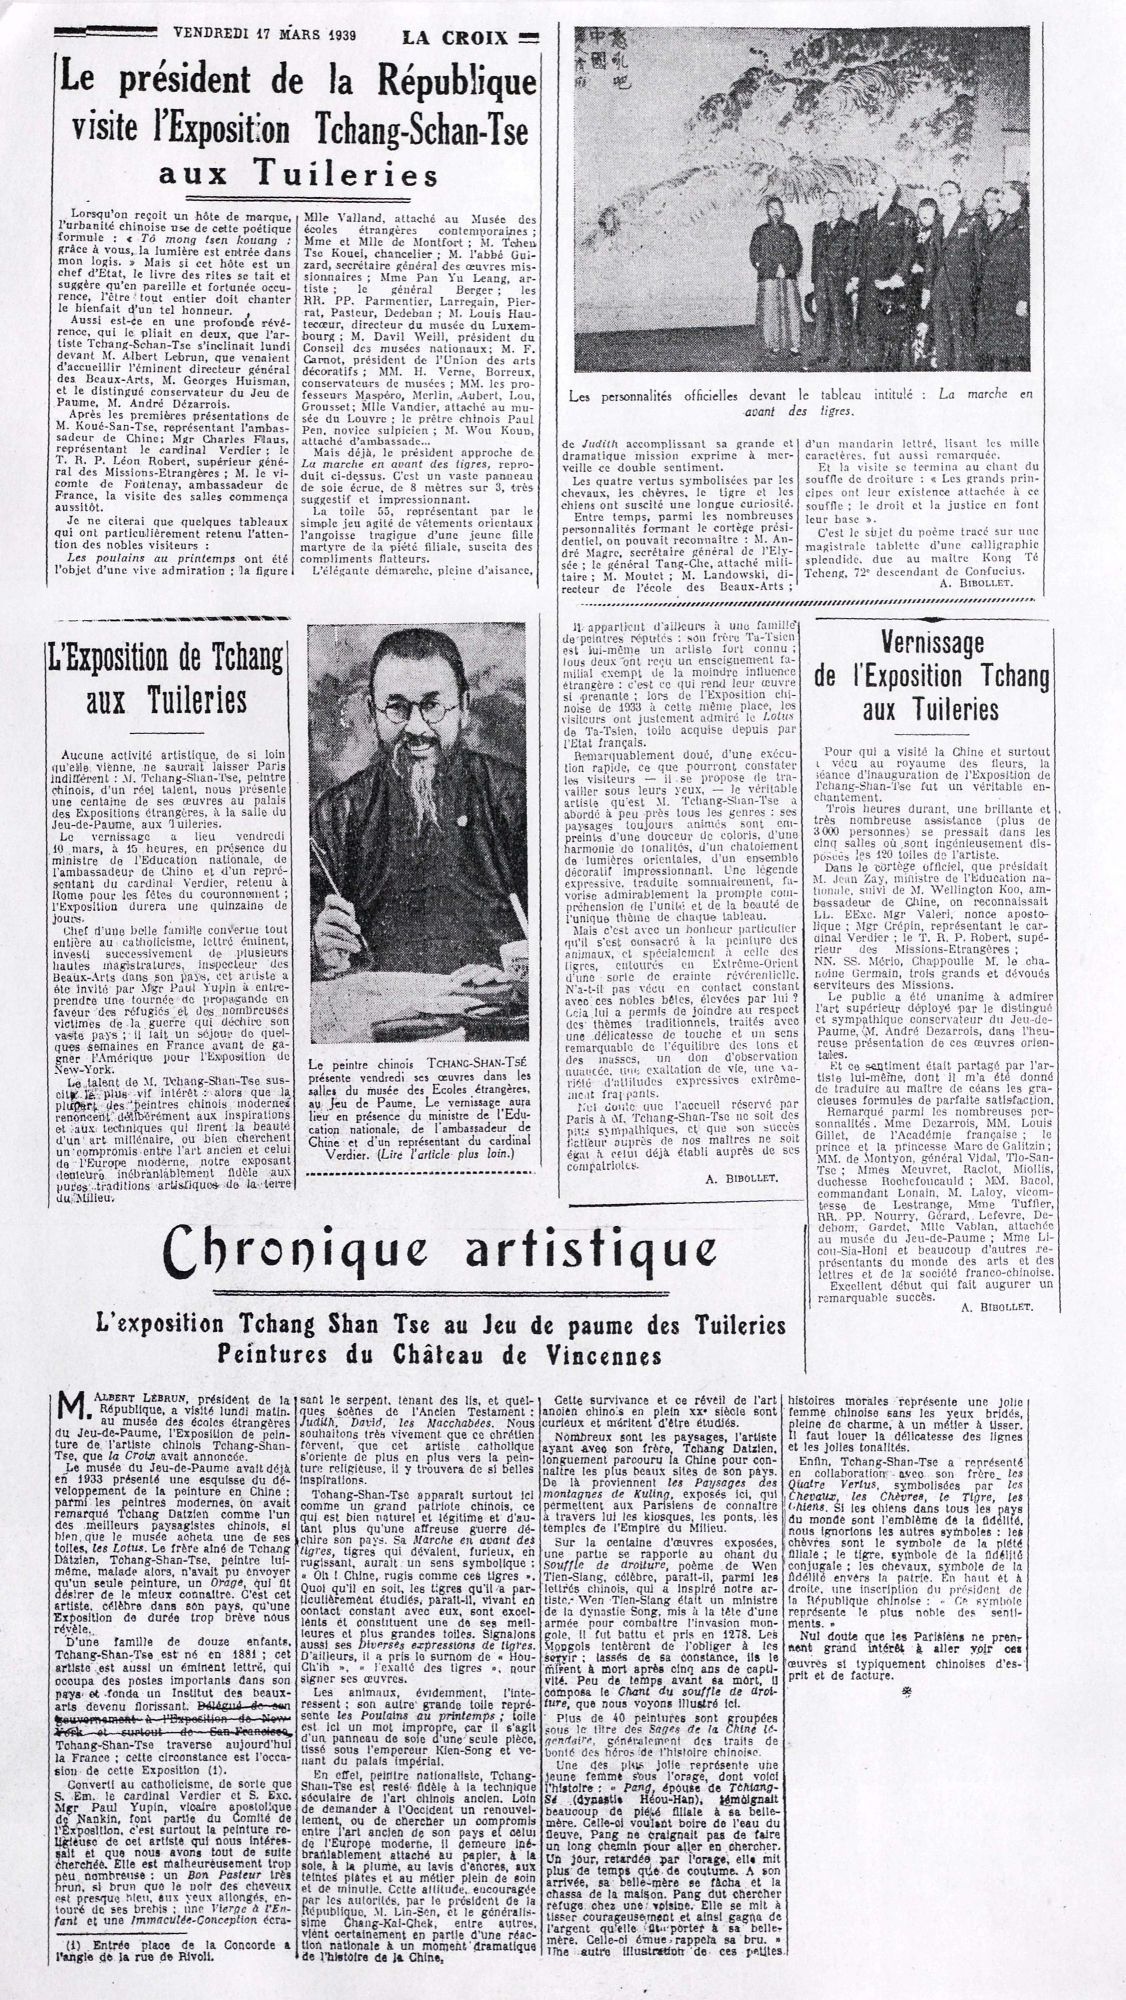 Newspaper clippings -- Dutch and French Language (untranslated)